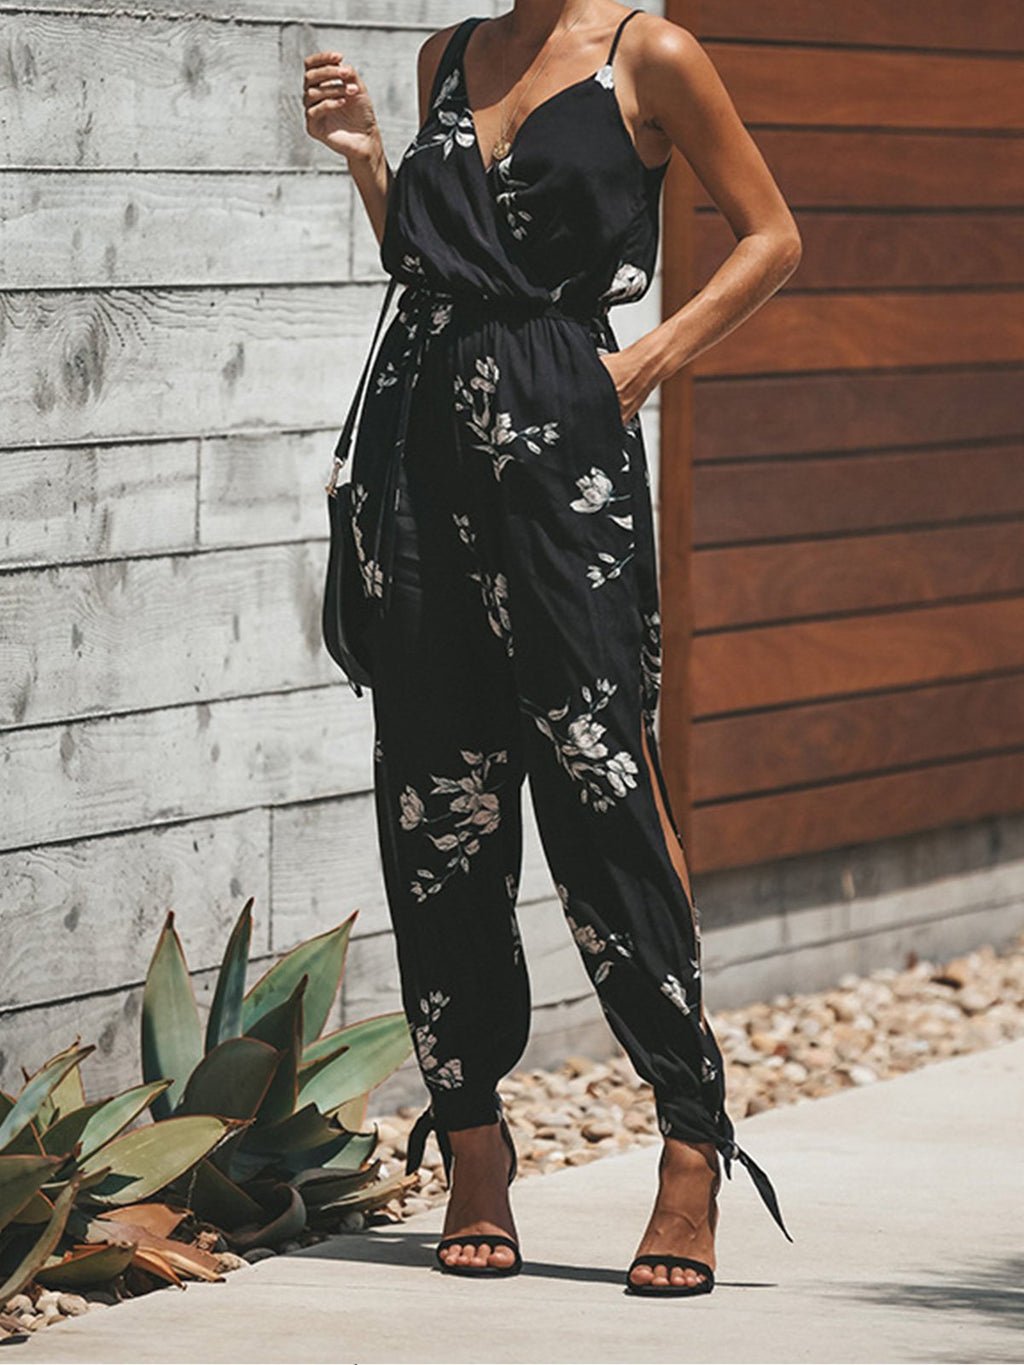 Floral Print Backless String Spaghetti Strap V Neck Women Jumpsuits